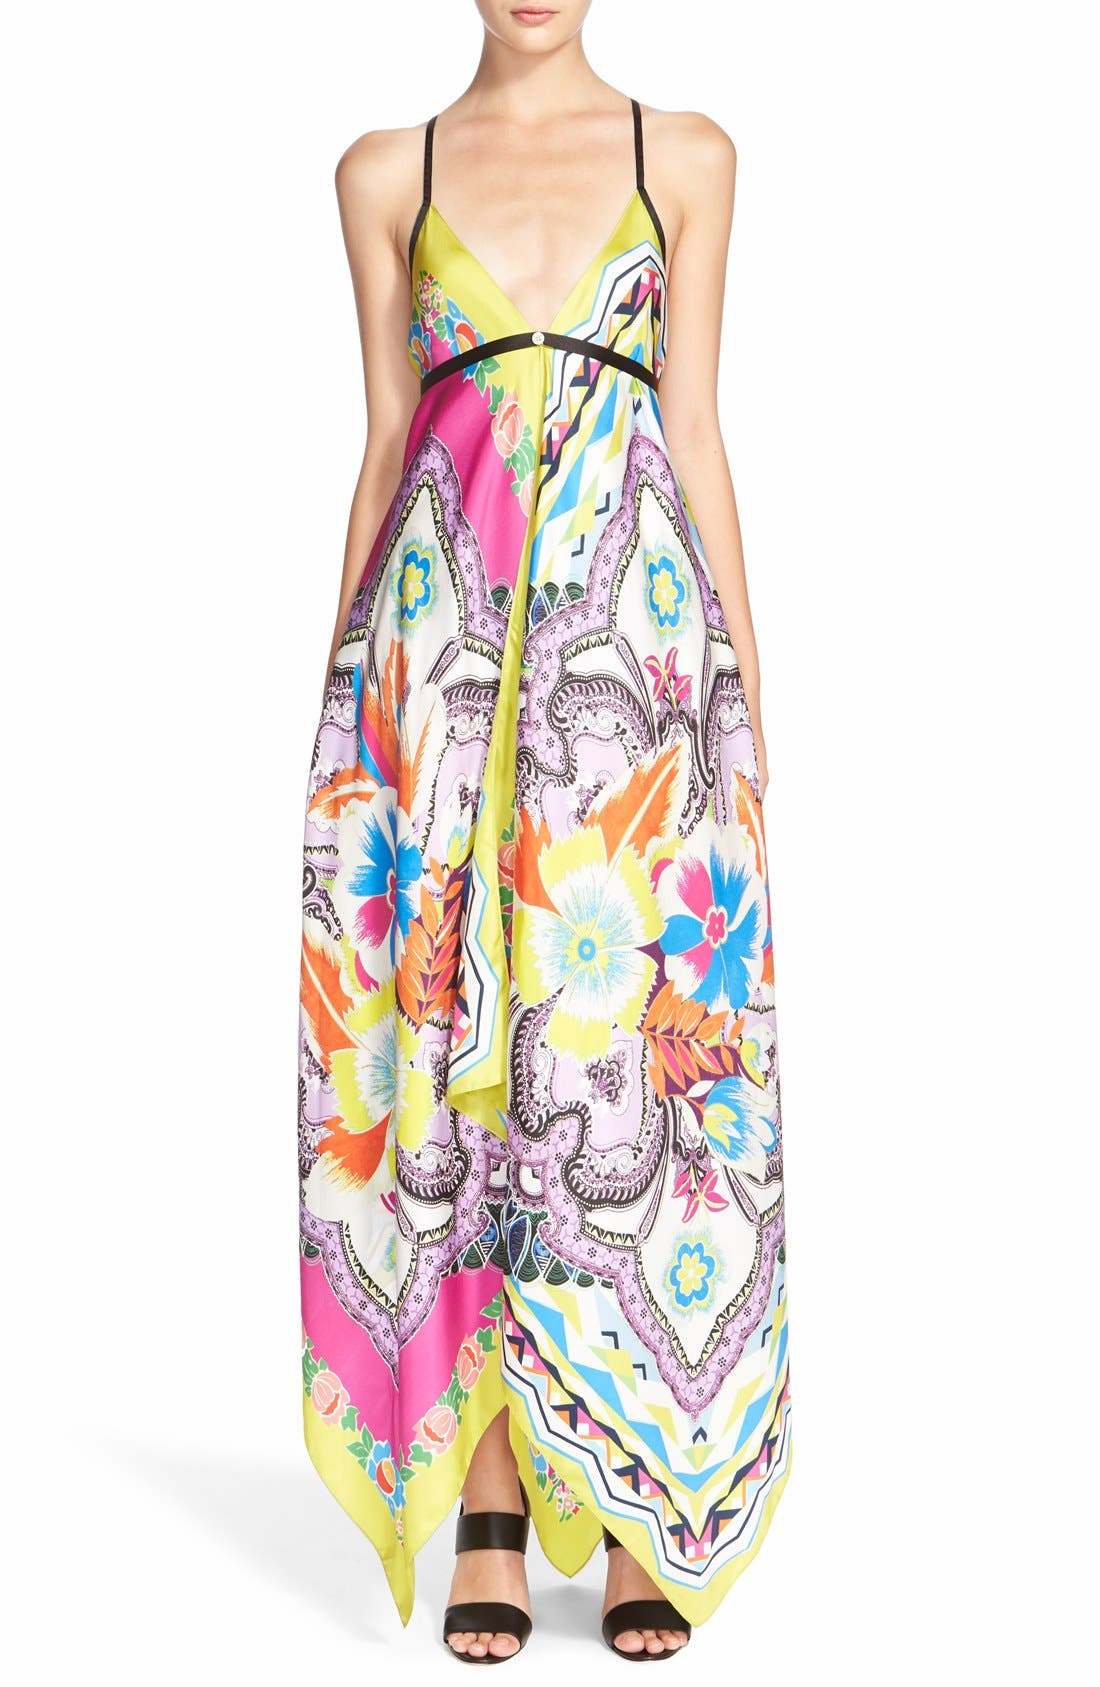 Main Image - Etro Floral Print Silk Handkerchief Dress